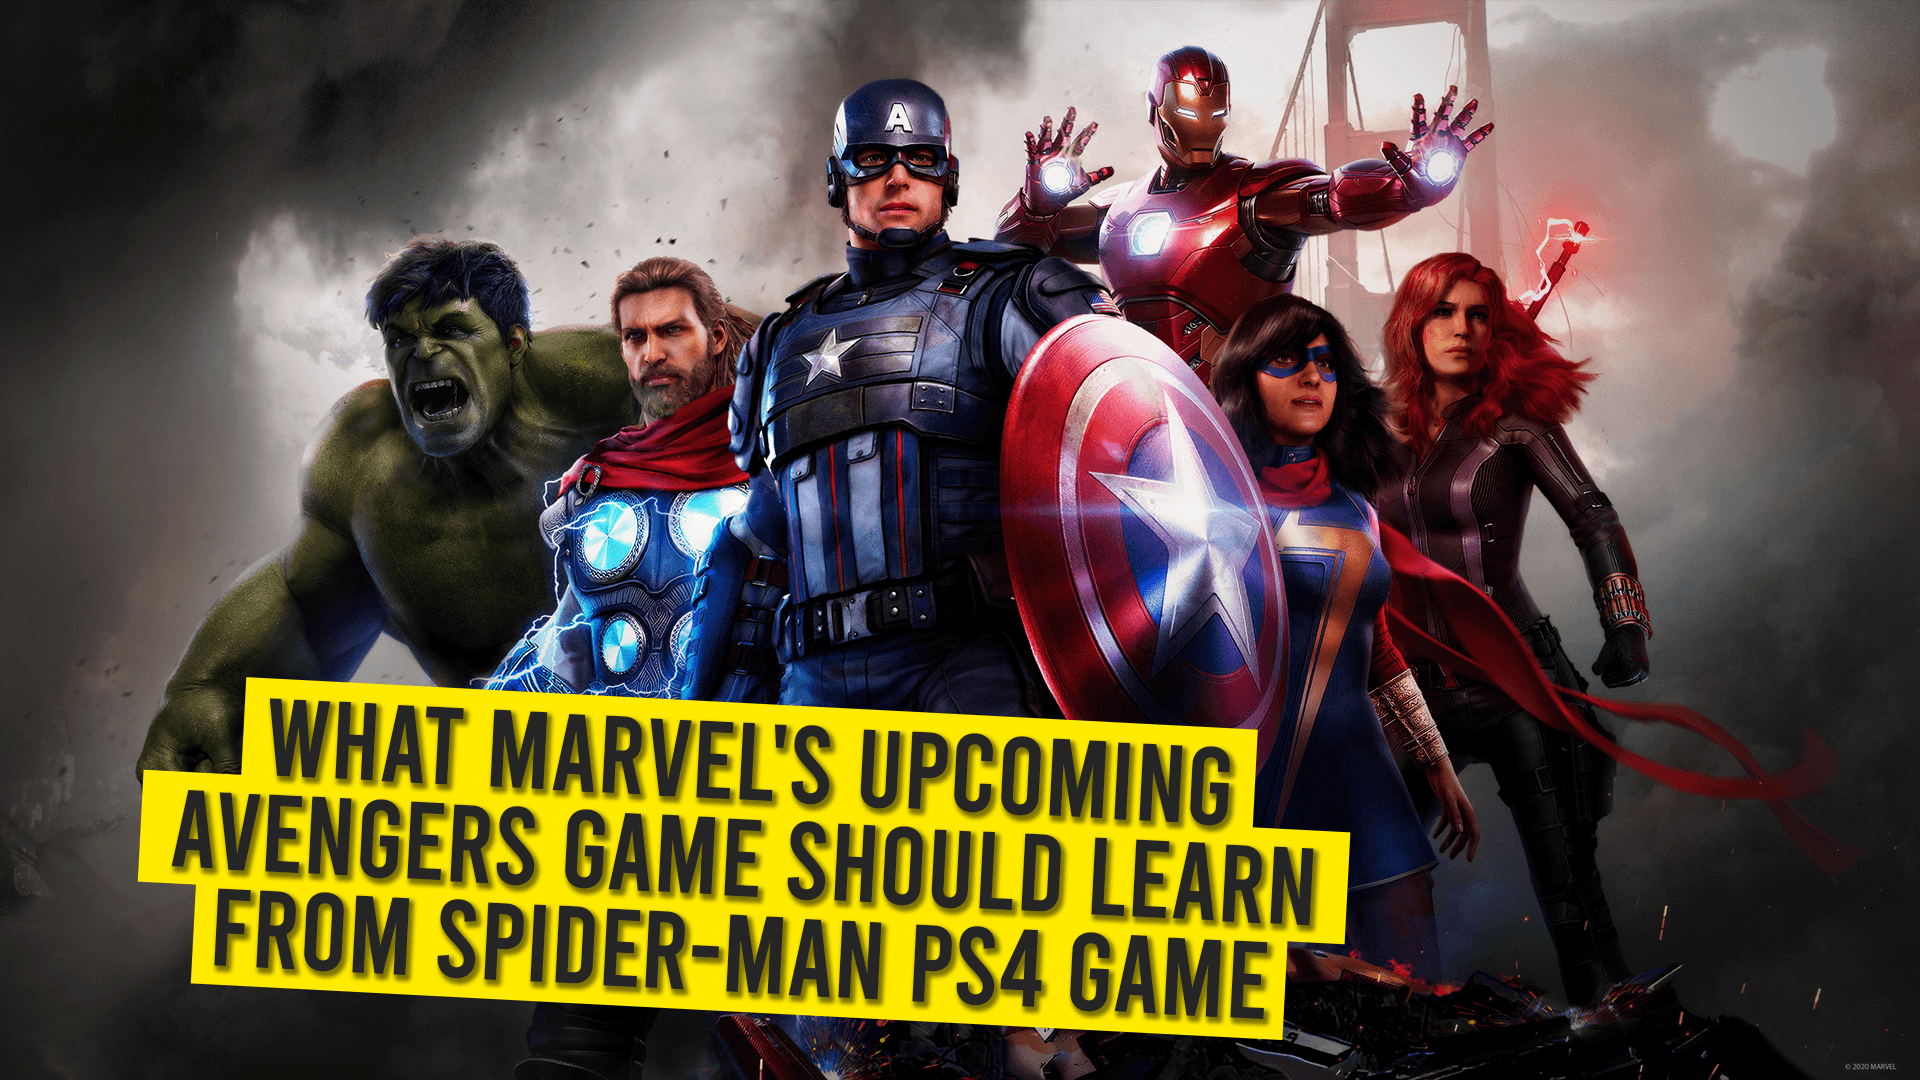 What Marvel's Upcoming Avengers Game Should Learn From Spider-Man PS4 Game